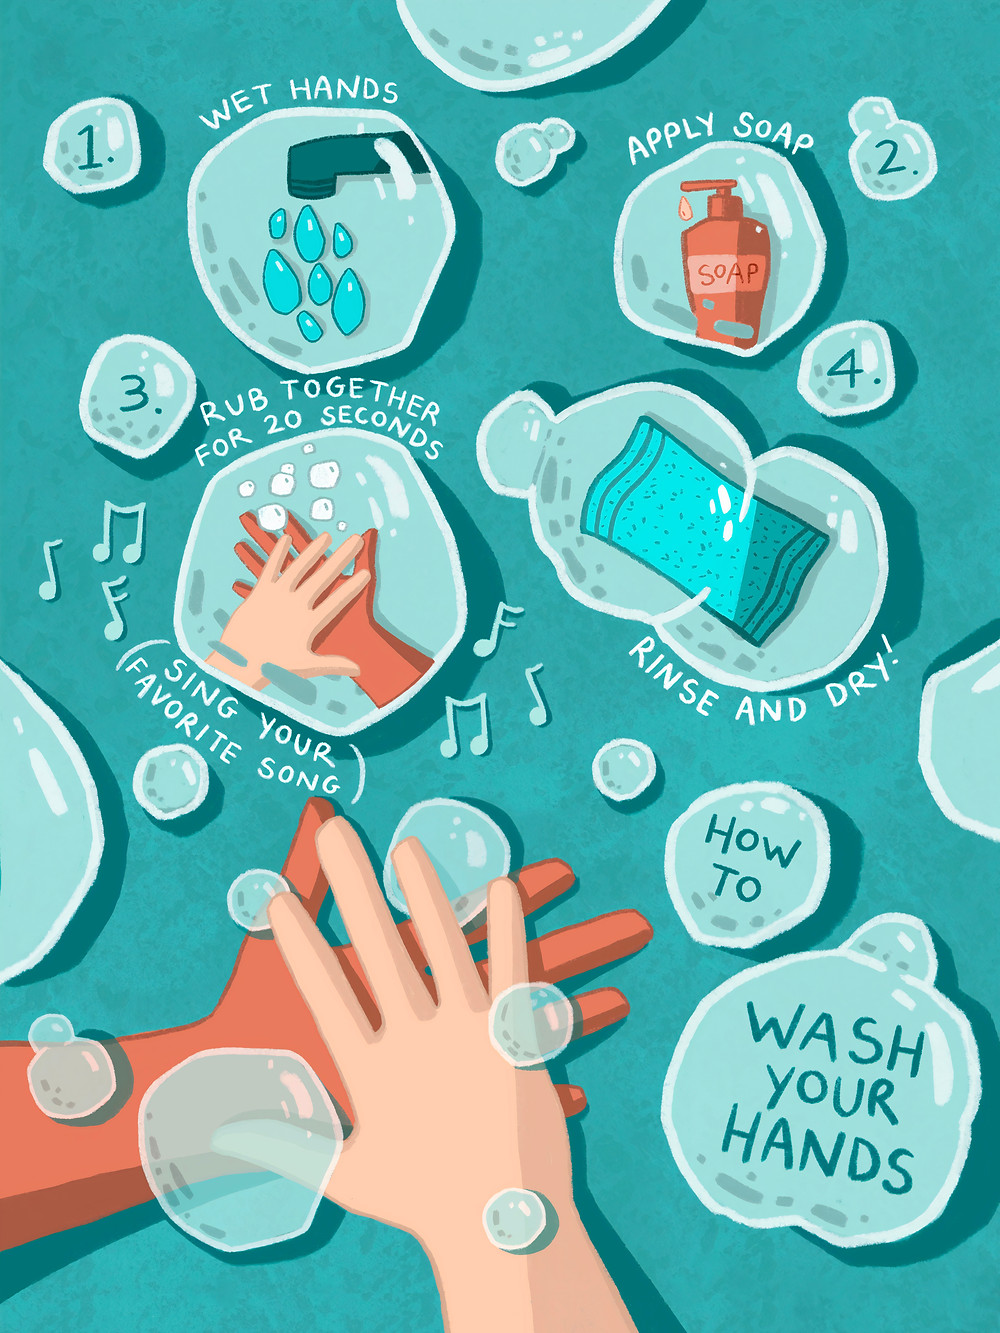 COVID-19 handwashing instructions how to wash your ands